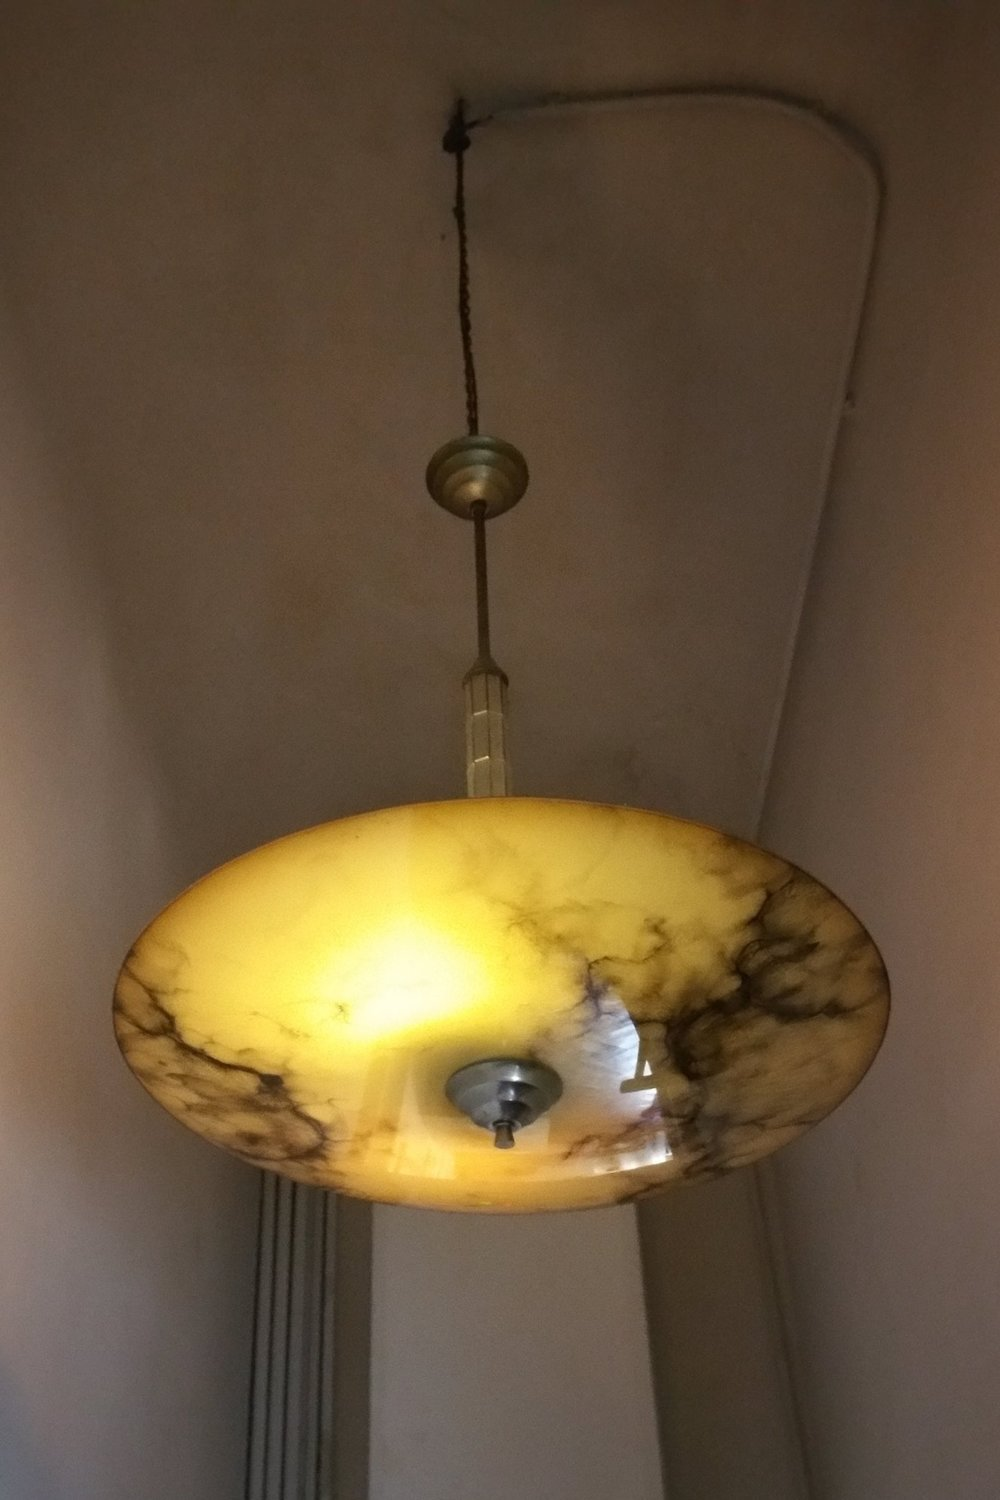 hall light fixture.jpg